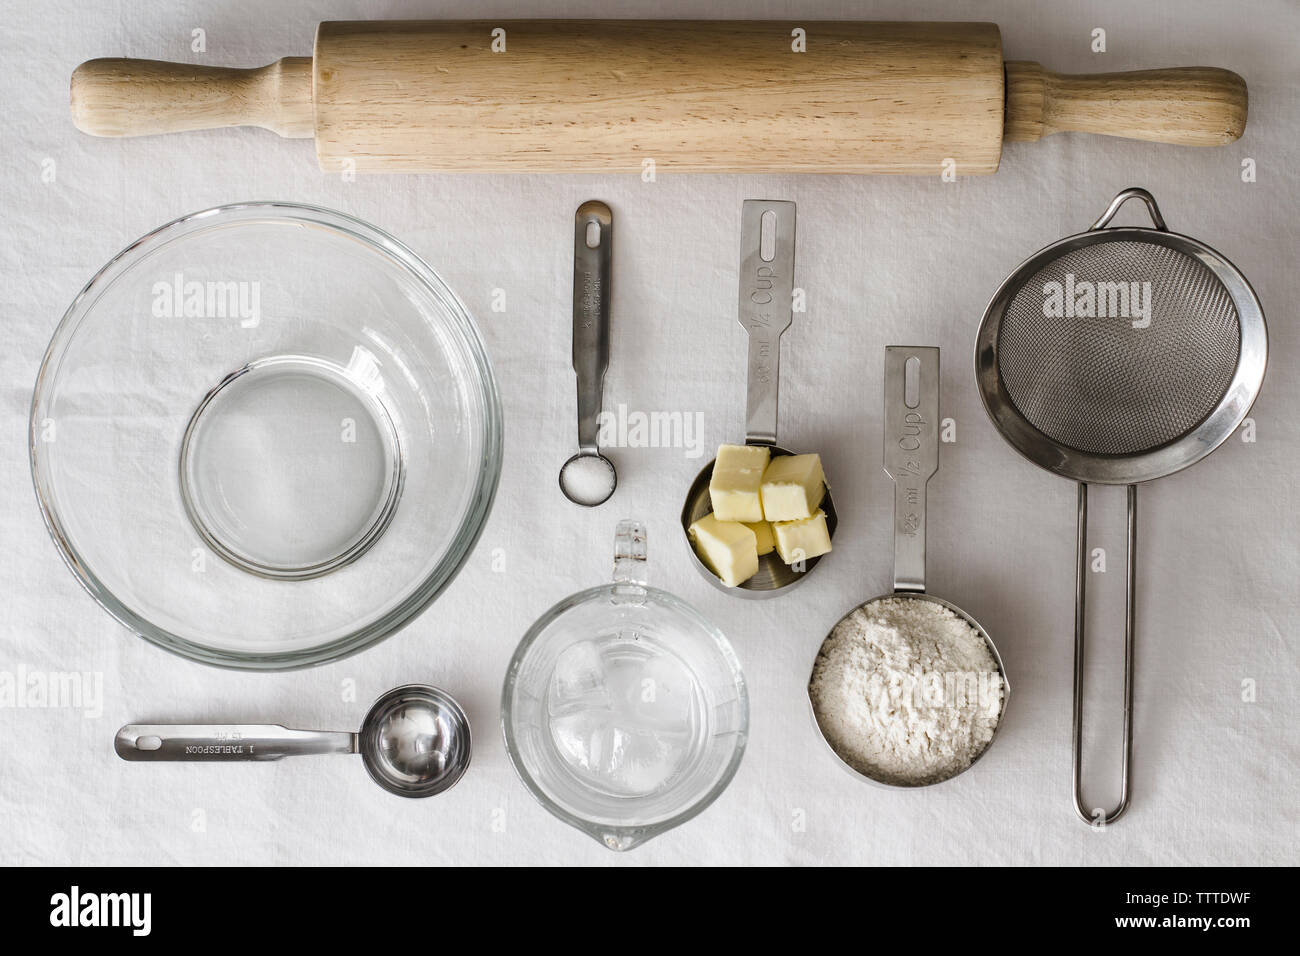 High angle view of ingredients and kitchen utensils on table - Stock Image